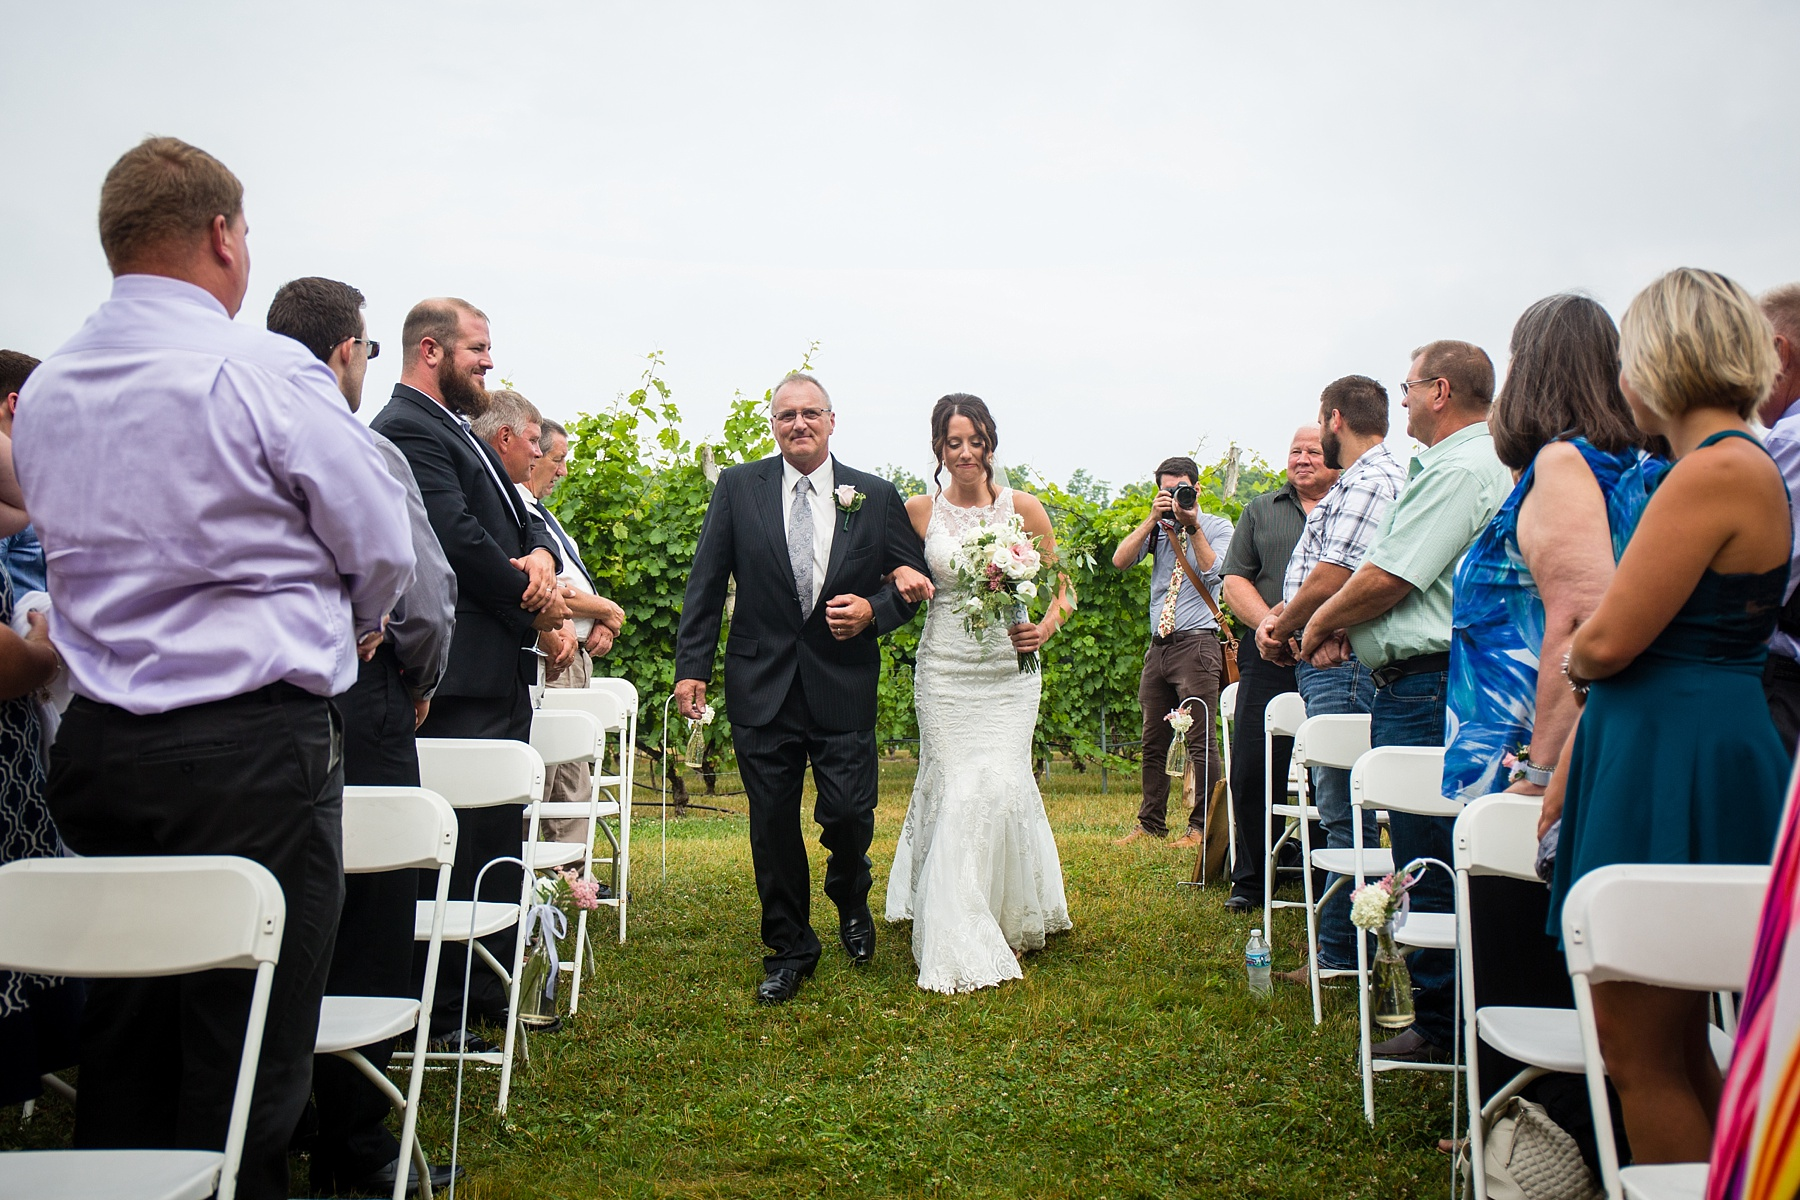 Brandon_Shafer_Photography_Elizabeth_Scott_Traverse_City_Wedding_0030.jpg